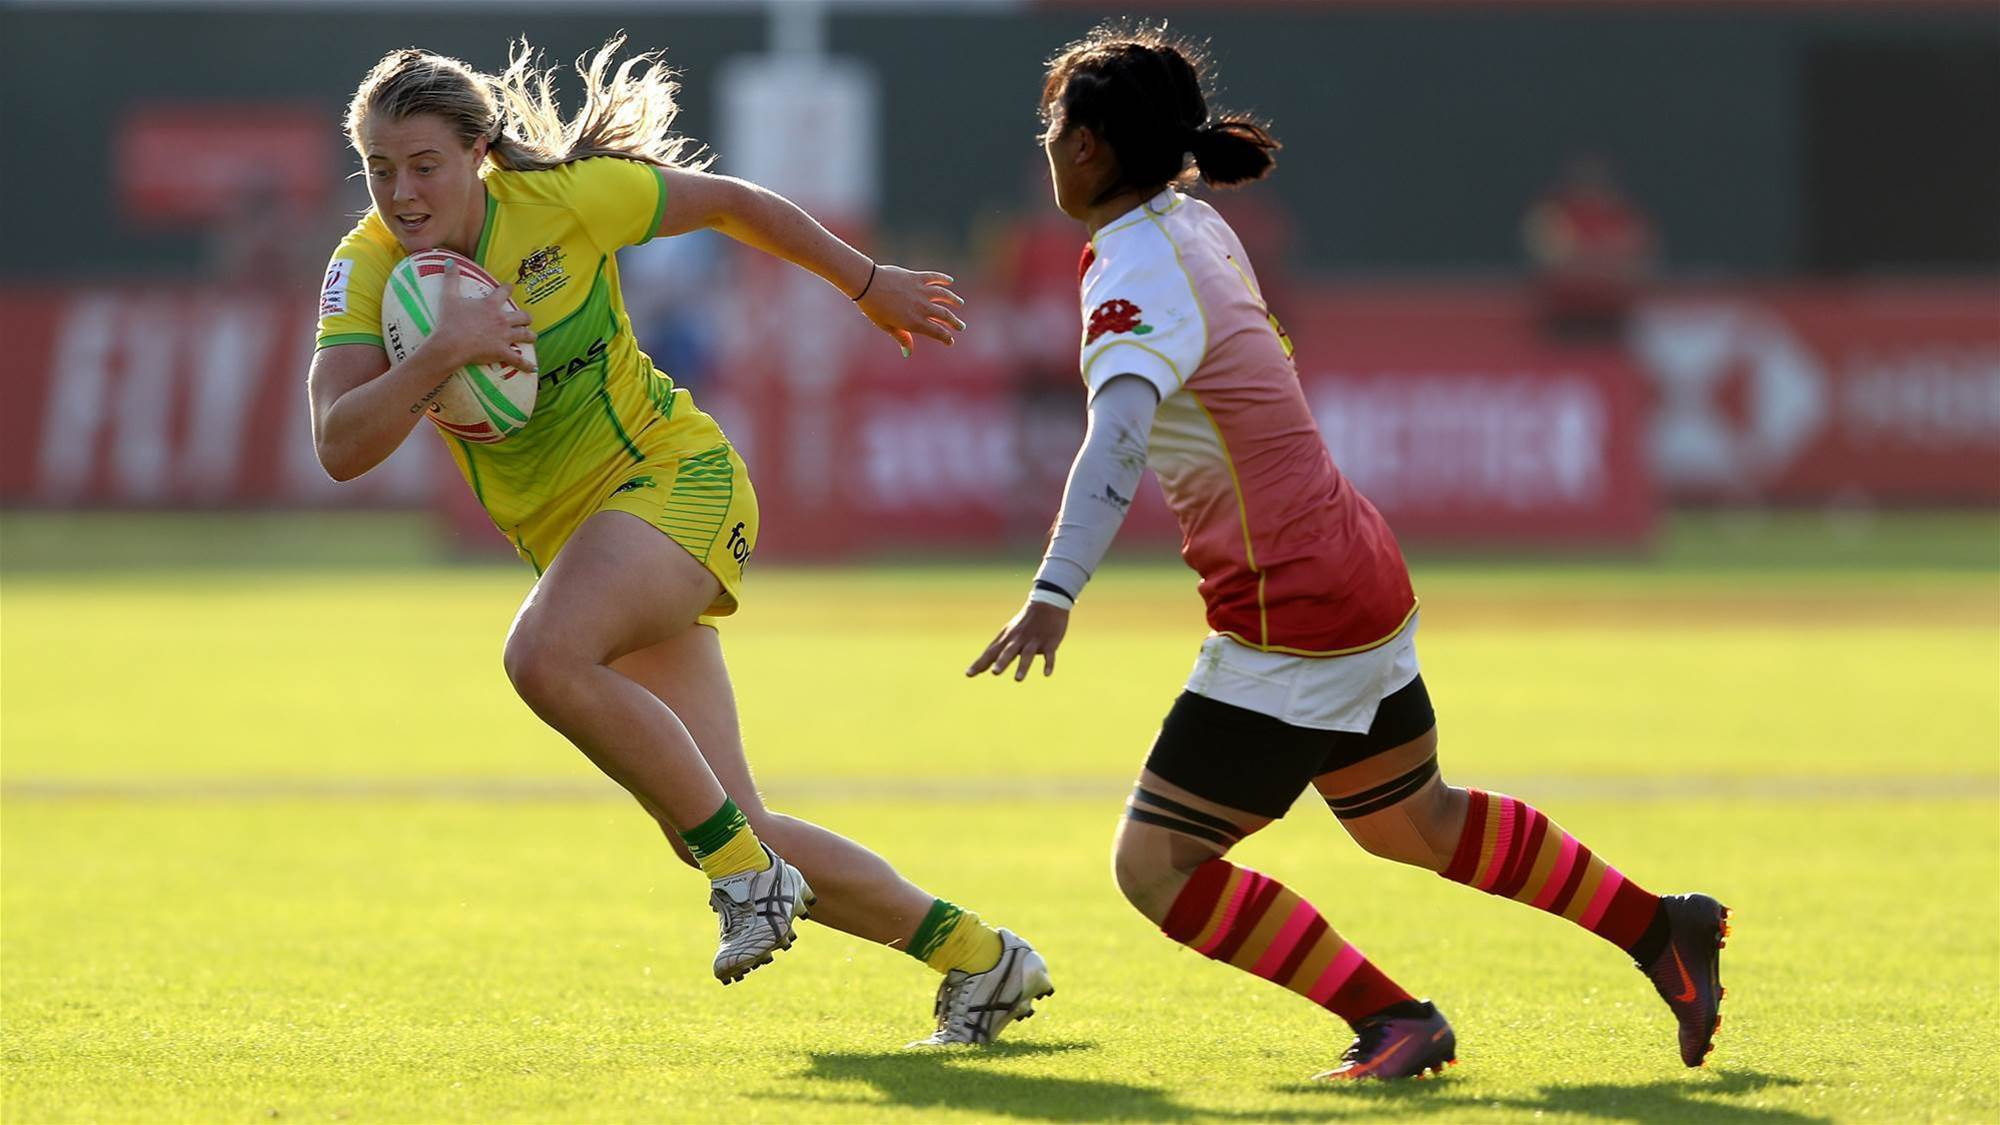 Australia sneak into quarters at Dubai 7s